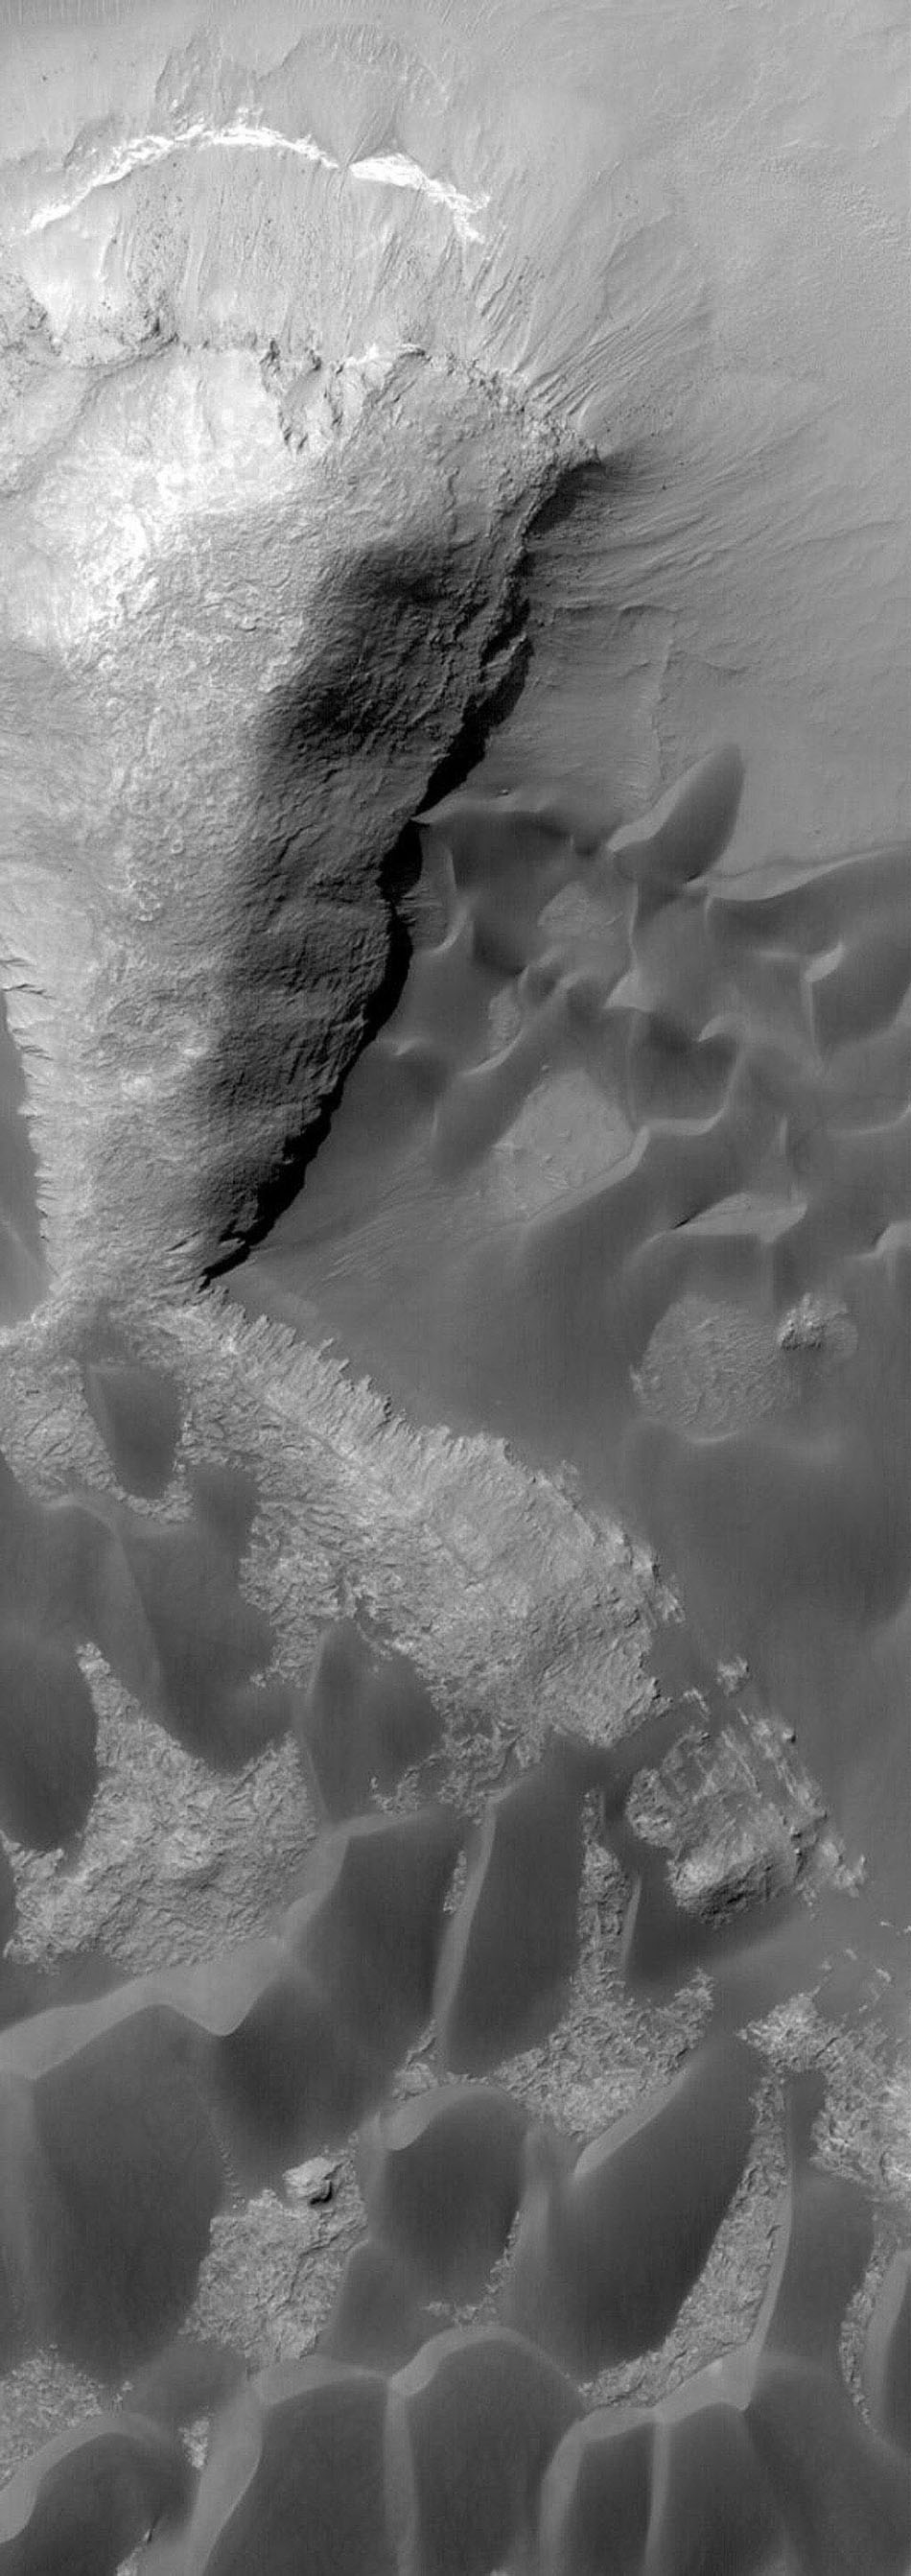 NASA's Mars Global Surveyor shows dark sand dunes and layered rock outcrops in Rabe Crater on Mars.